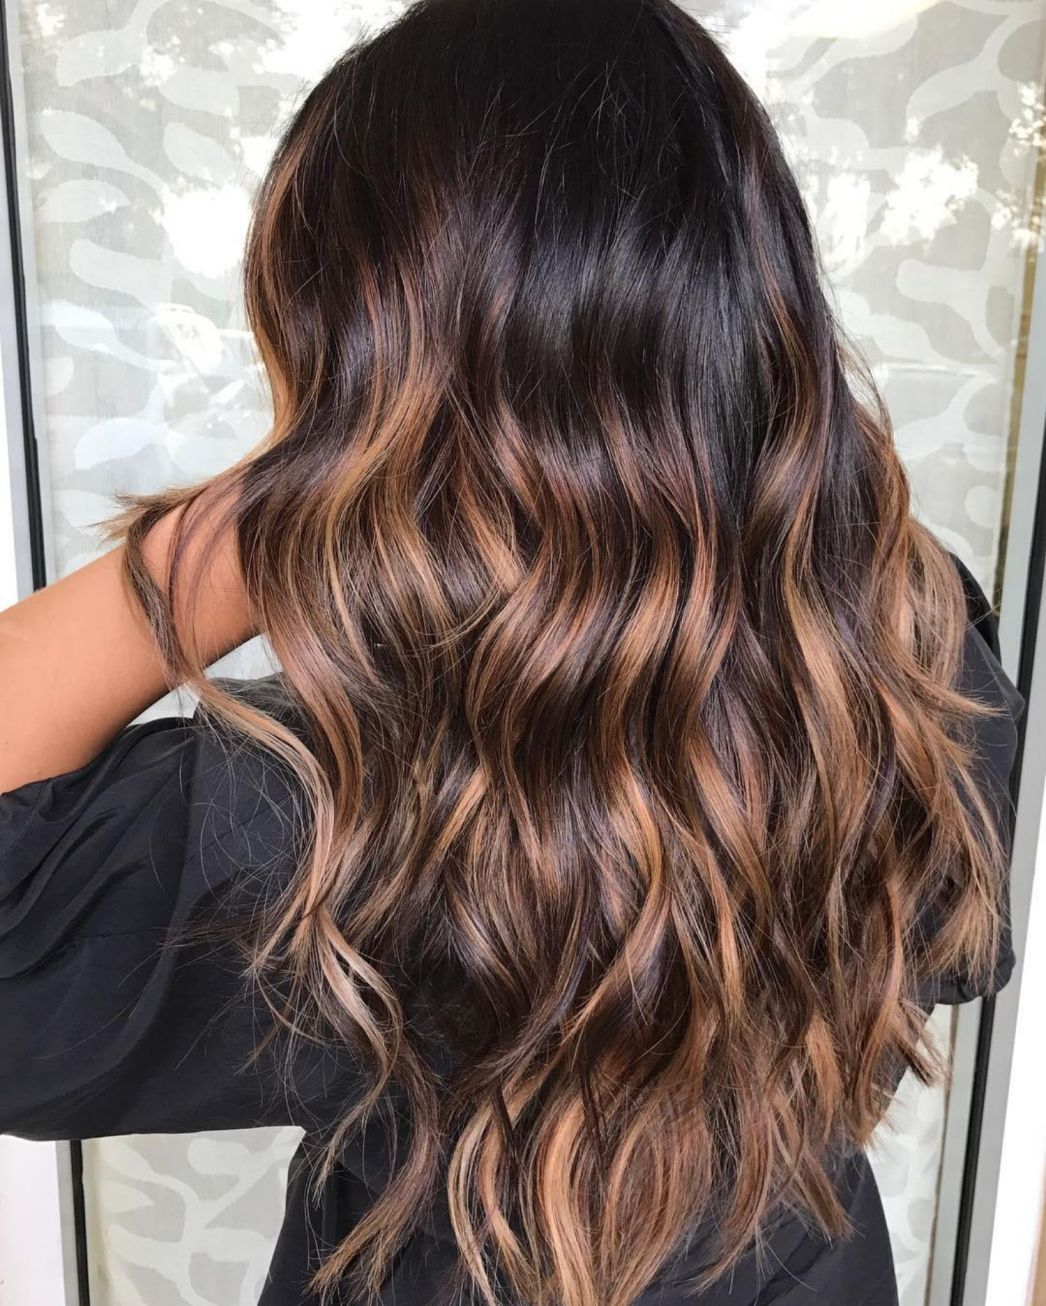 60 chocolate brown hair color ideas for brunettes | beaut